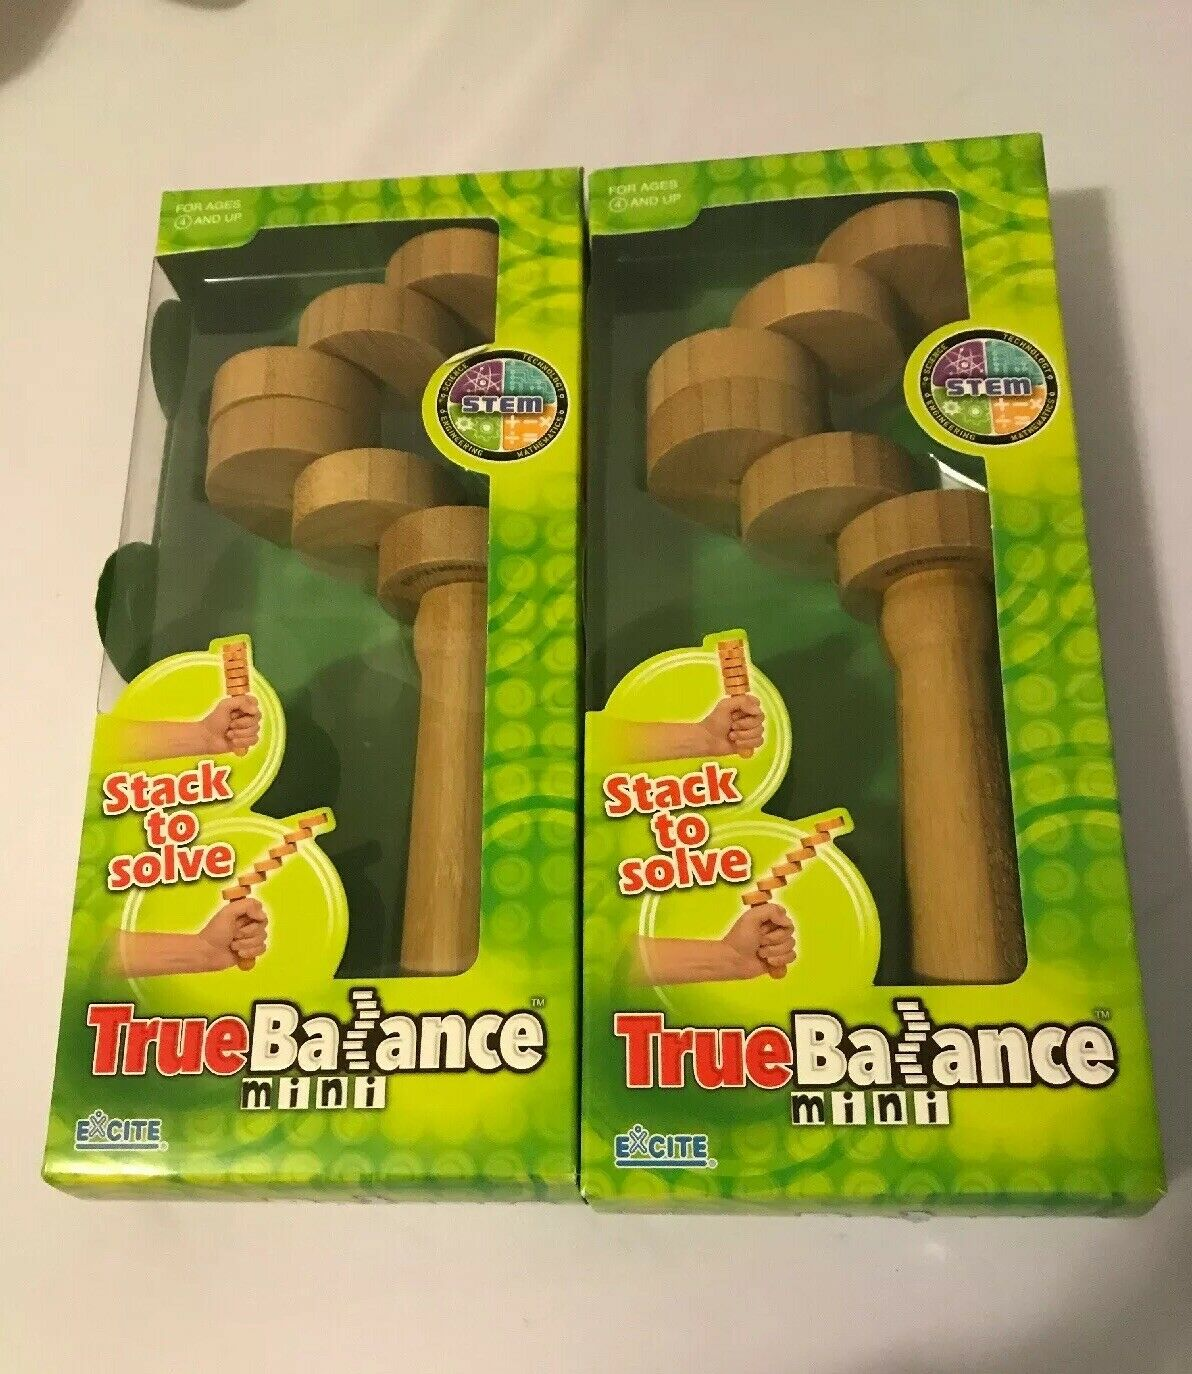 NEW True Balance Mini Wood STEM Learning Toy Excite Coordination Education 2 Set